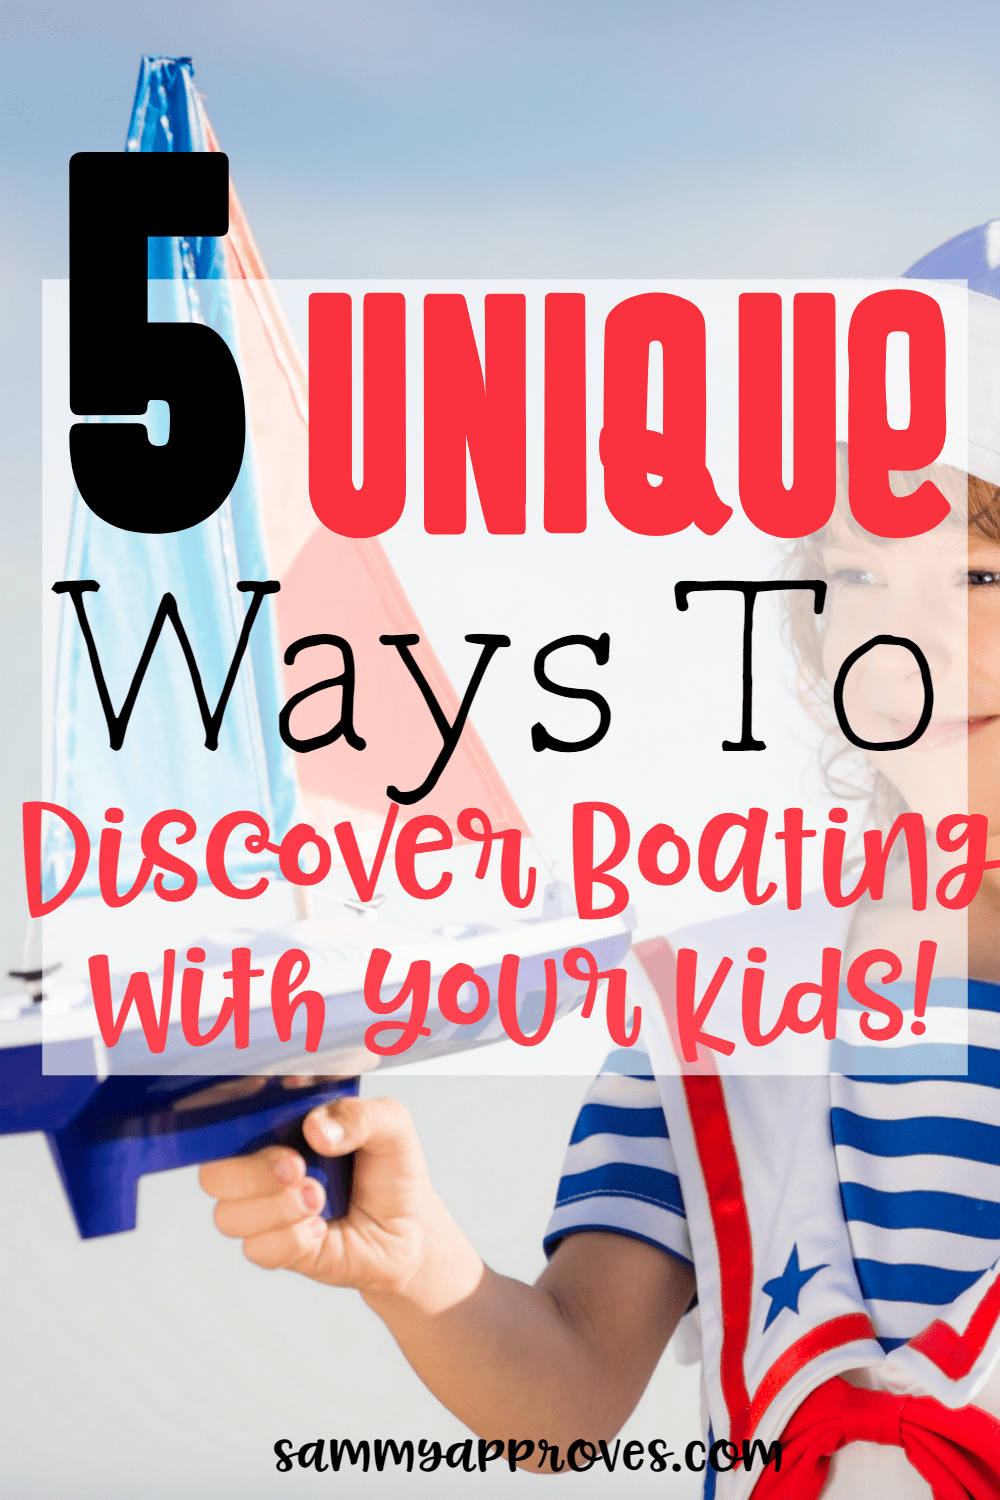 5 Unique Ways to Discover Boating With Your Kids | Great Summer Ideas!